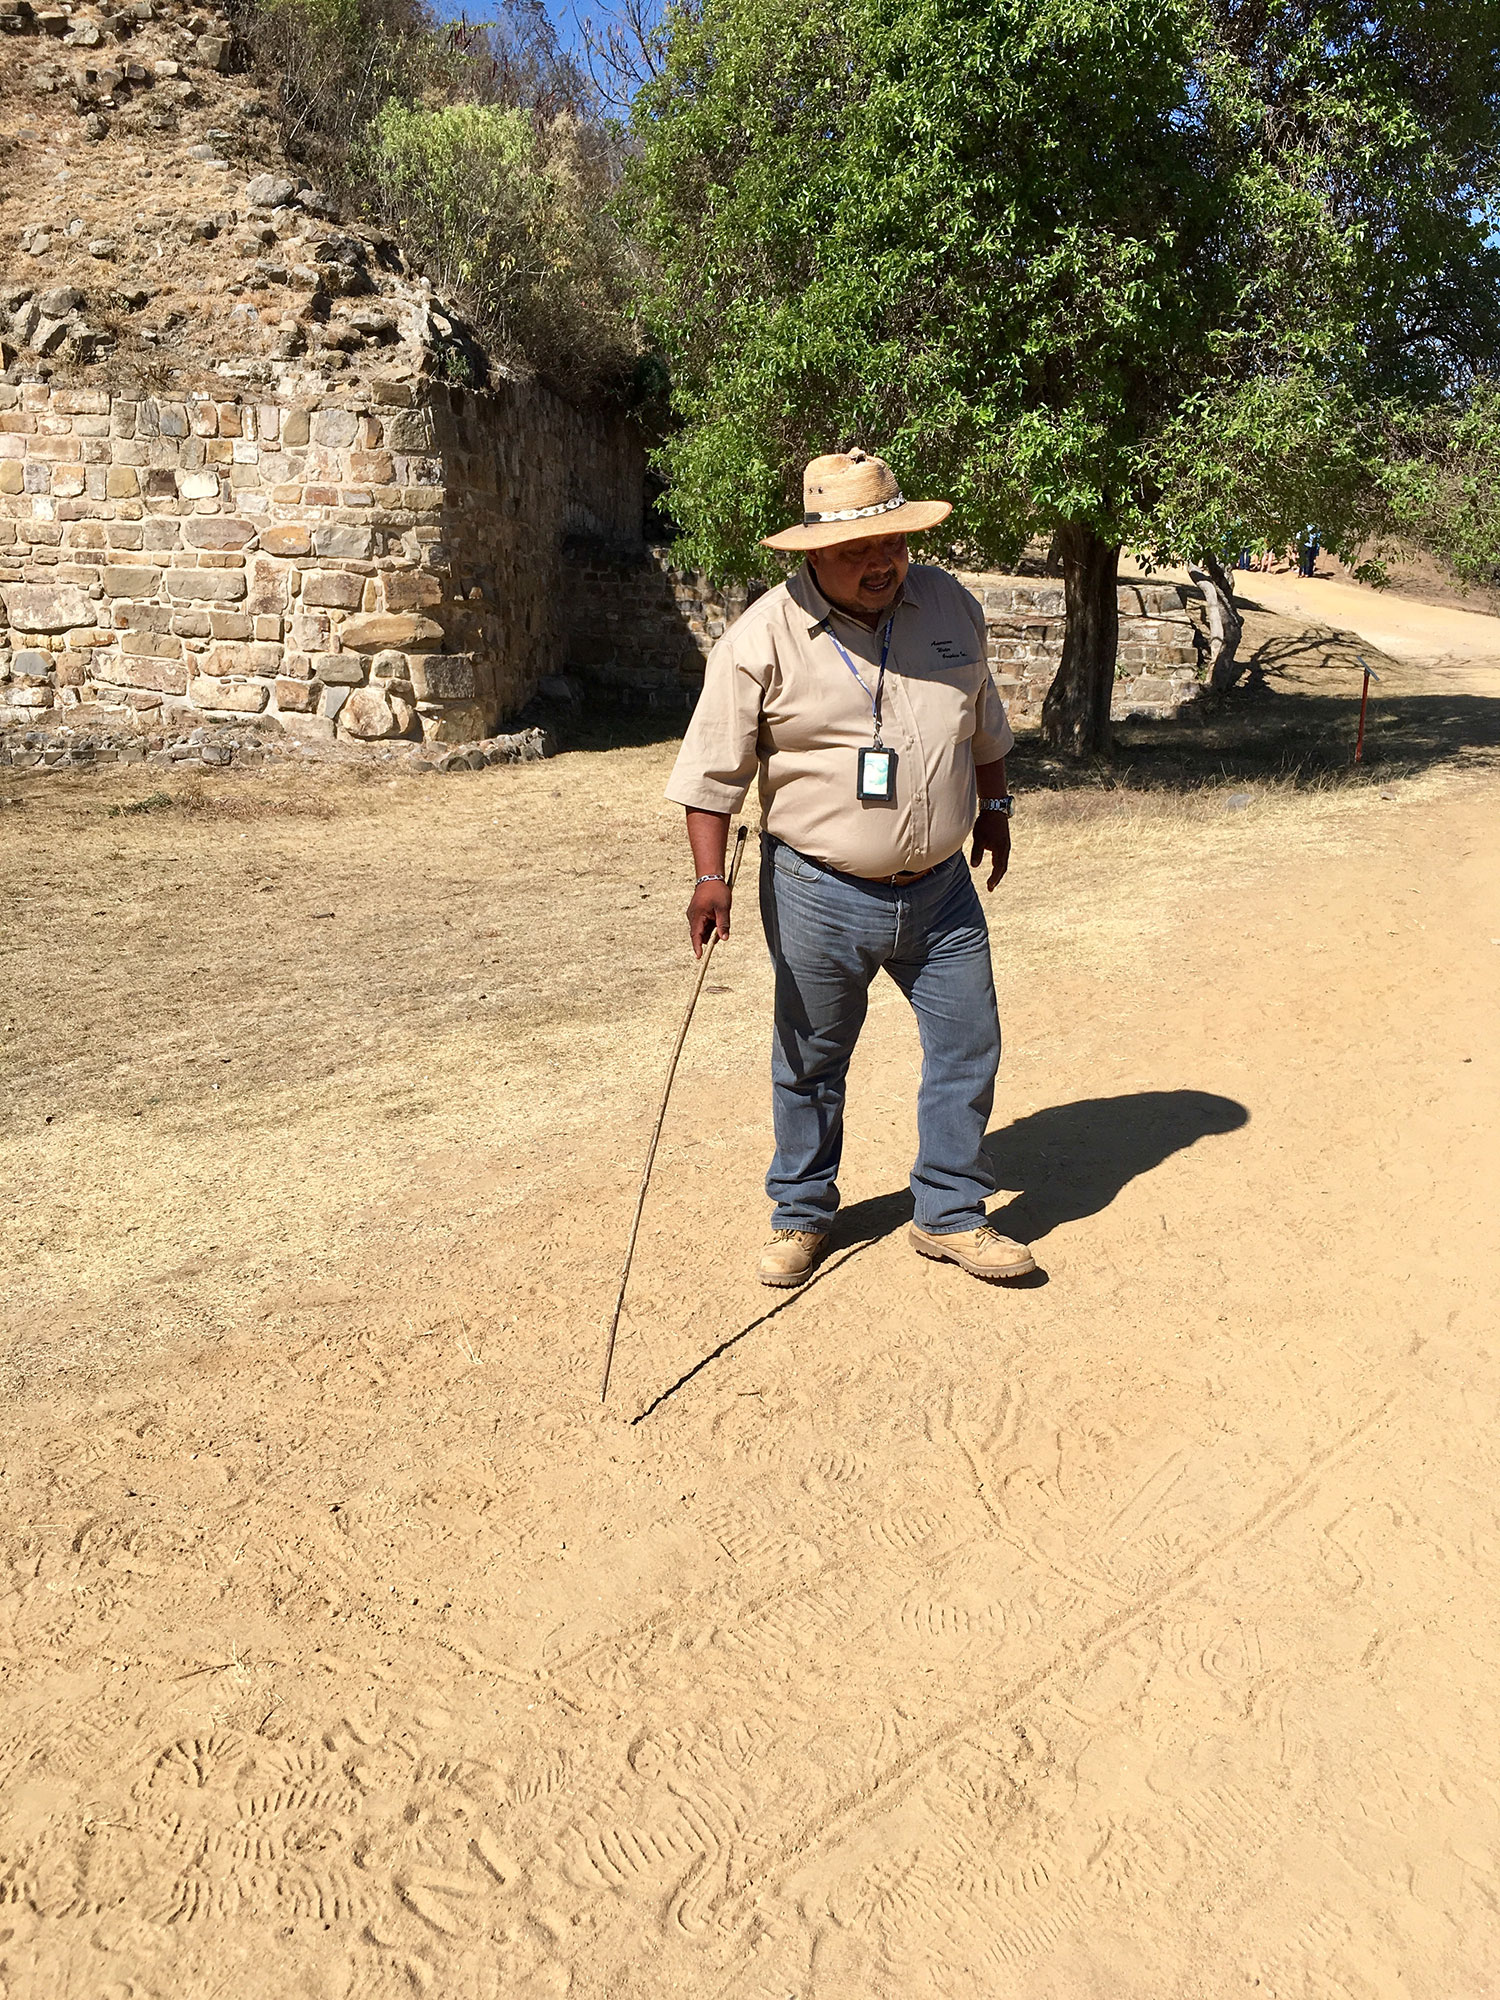 Our guide Fernando drawing the map of ancient valley habitation.